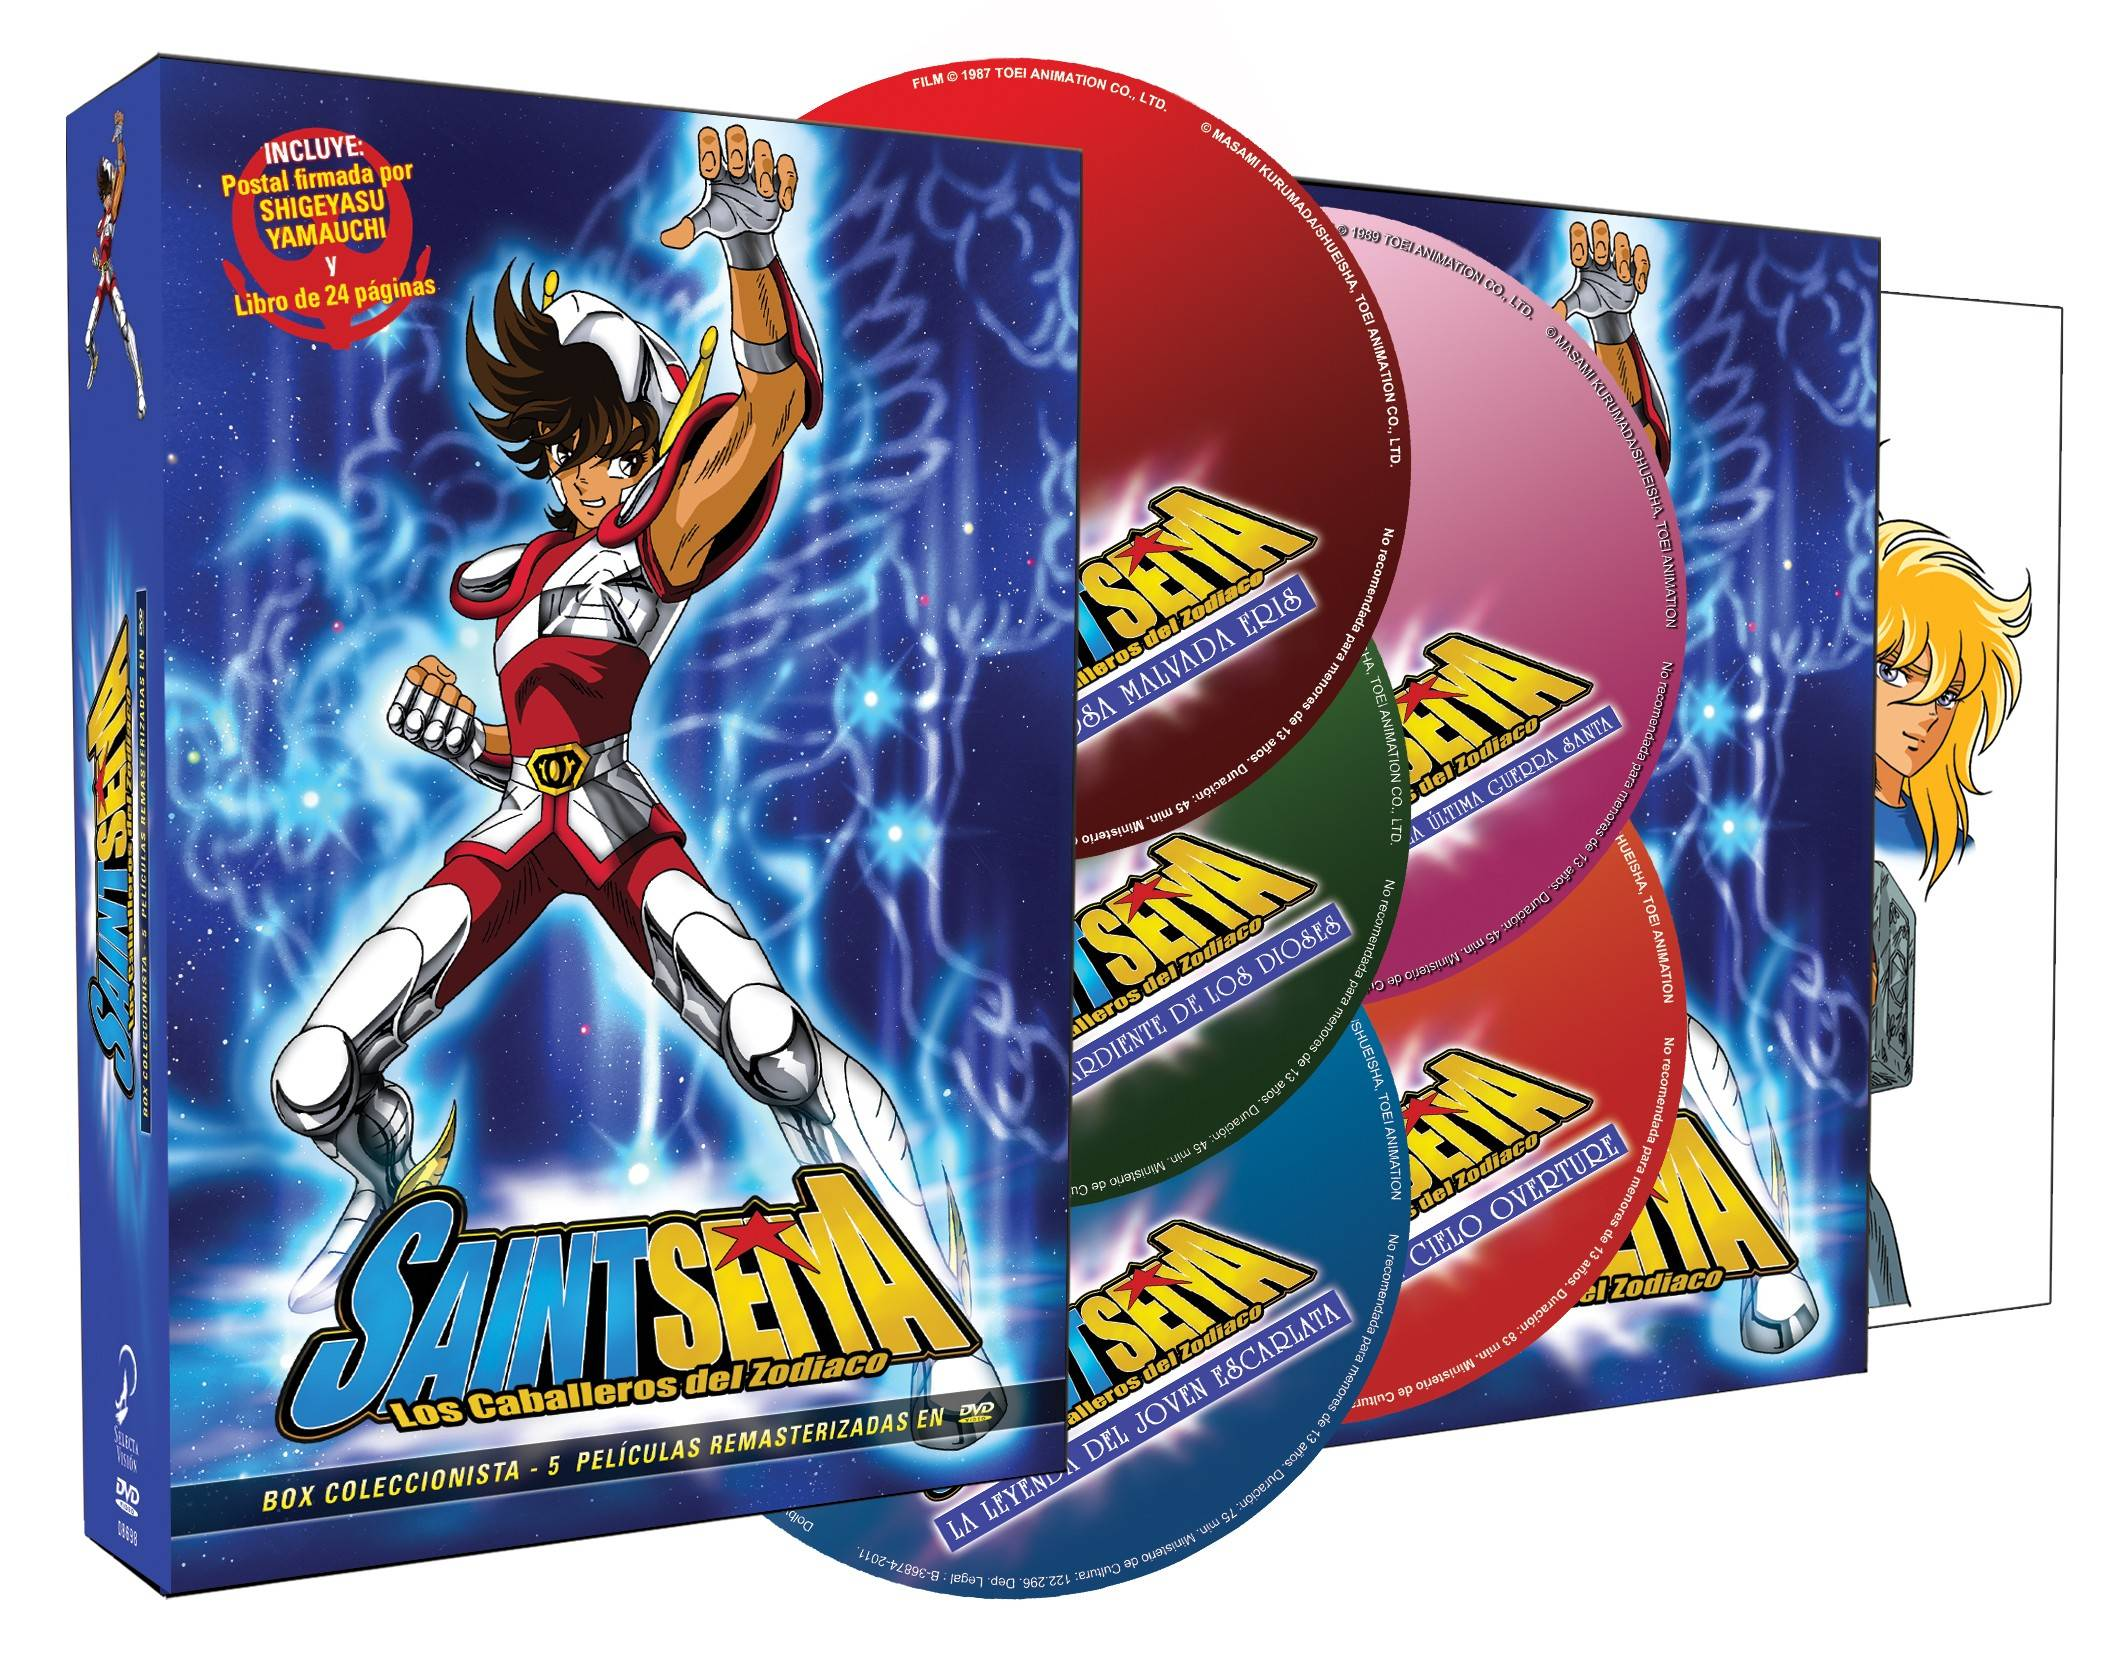 Saint Seiya Los Caballeros del Zodíaco Movie Box